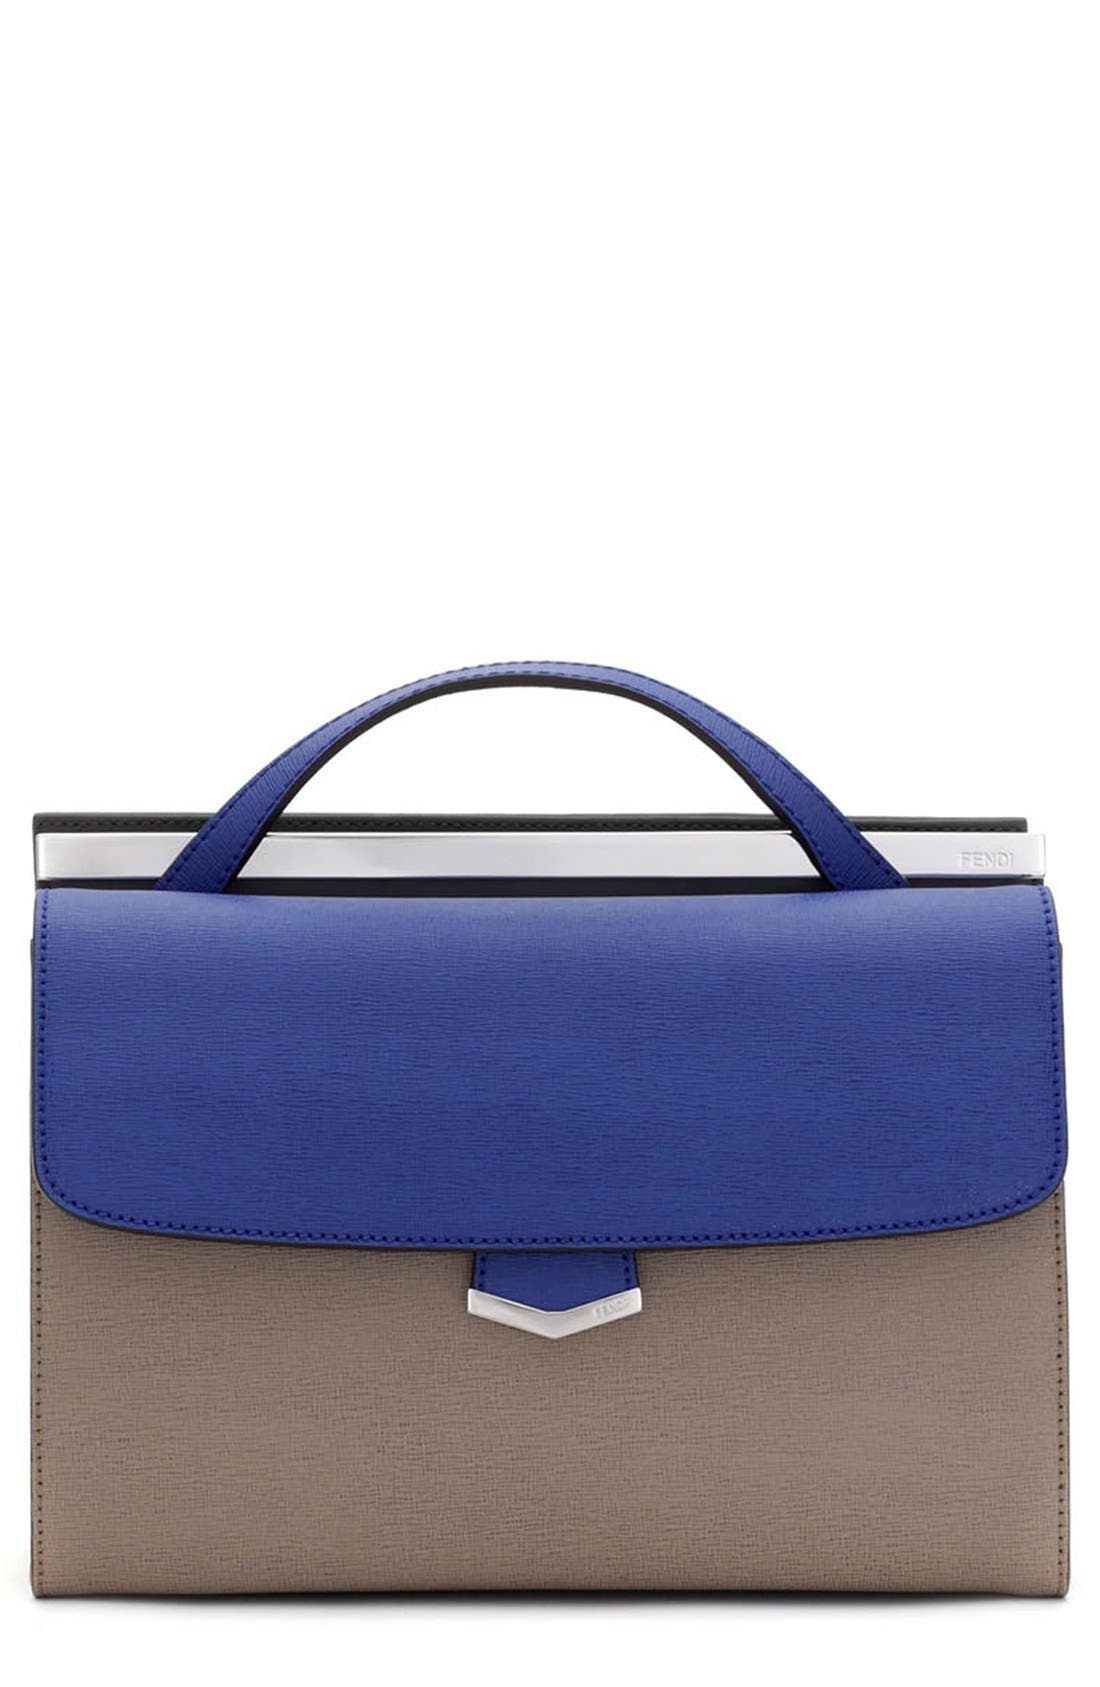 Main Image - Fendi 'Demi Jour' Colorblock Leather Satchel